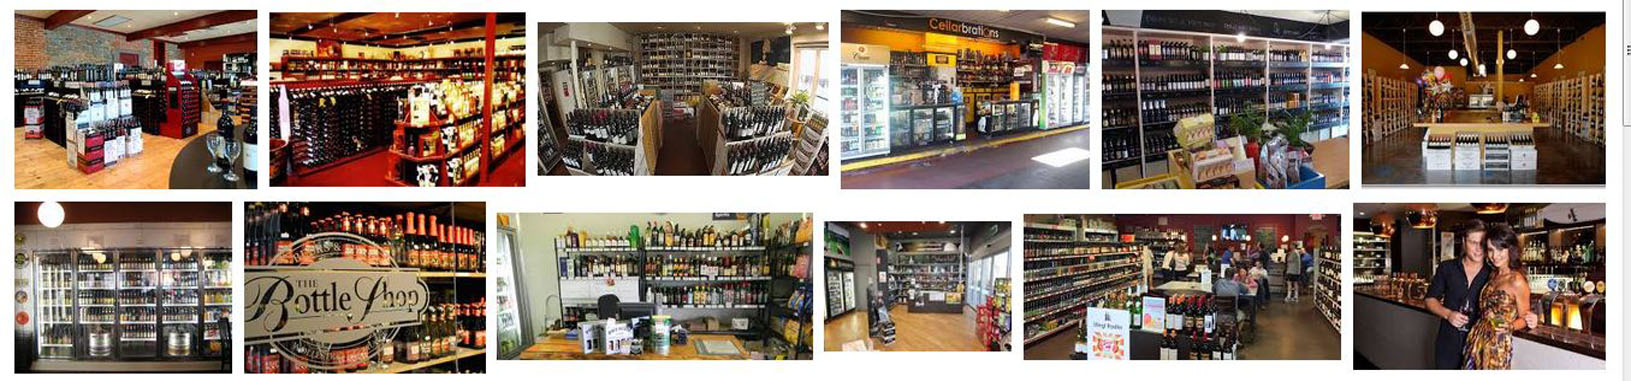 Online Beer and Wine Specials